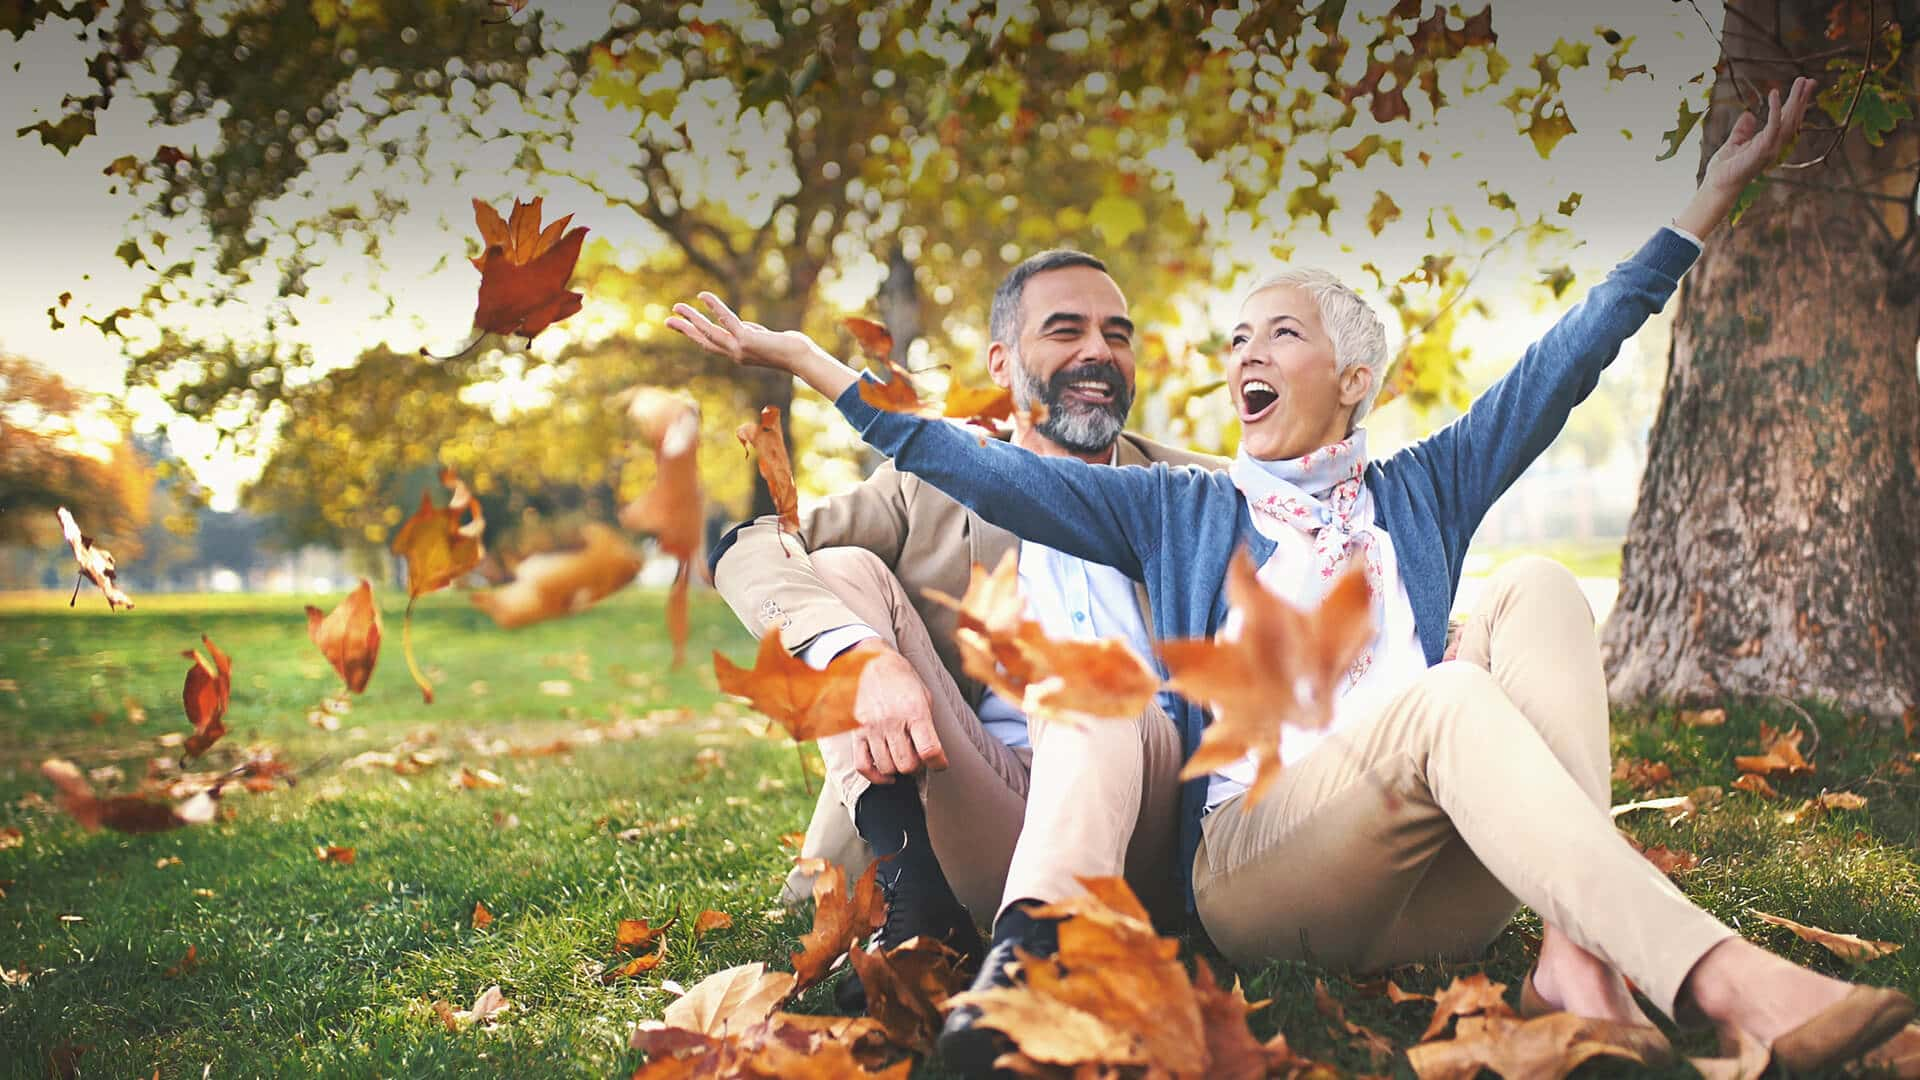 Dating over 50 symbolized by a happy man and woman sitting in the meadow of a park